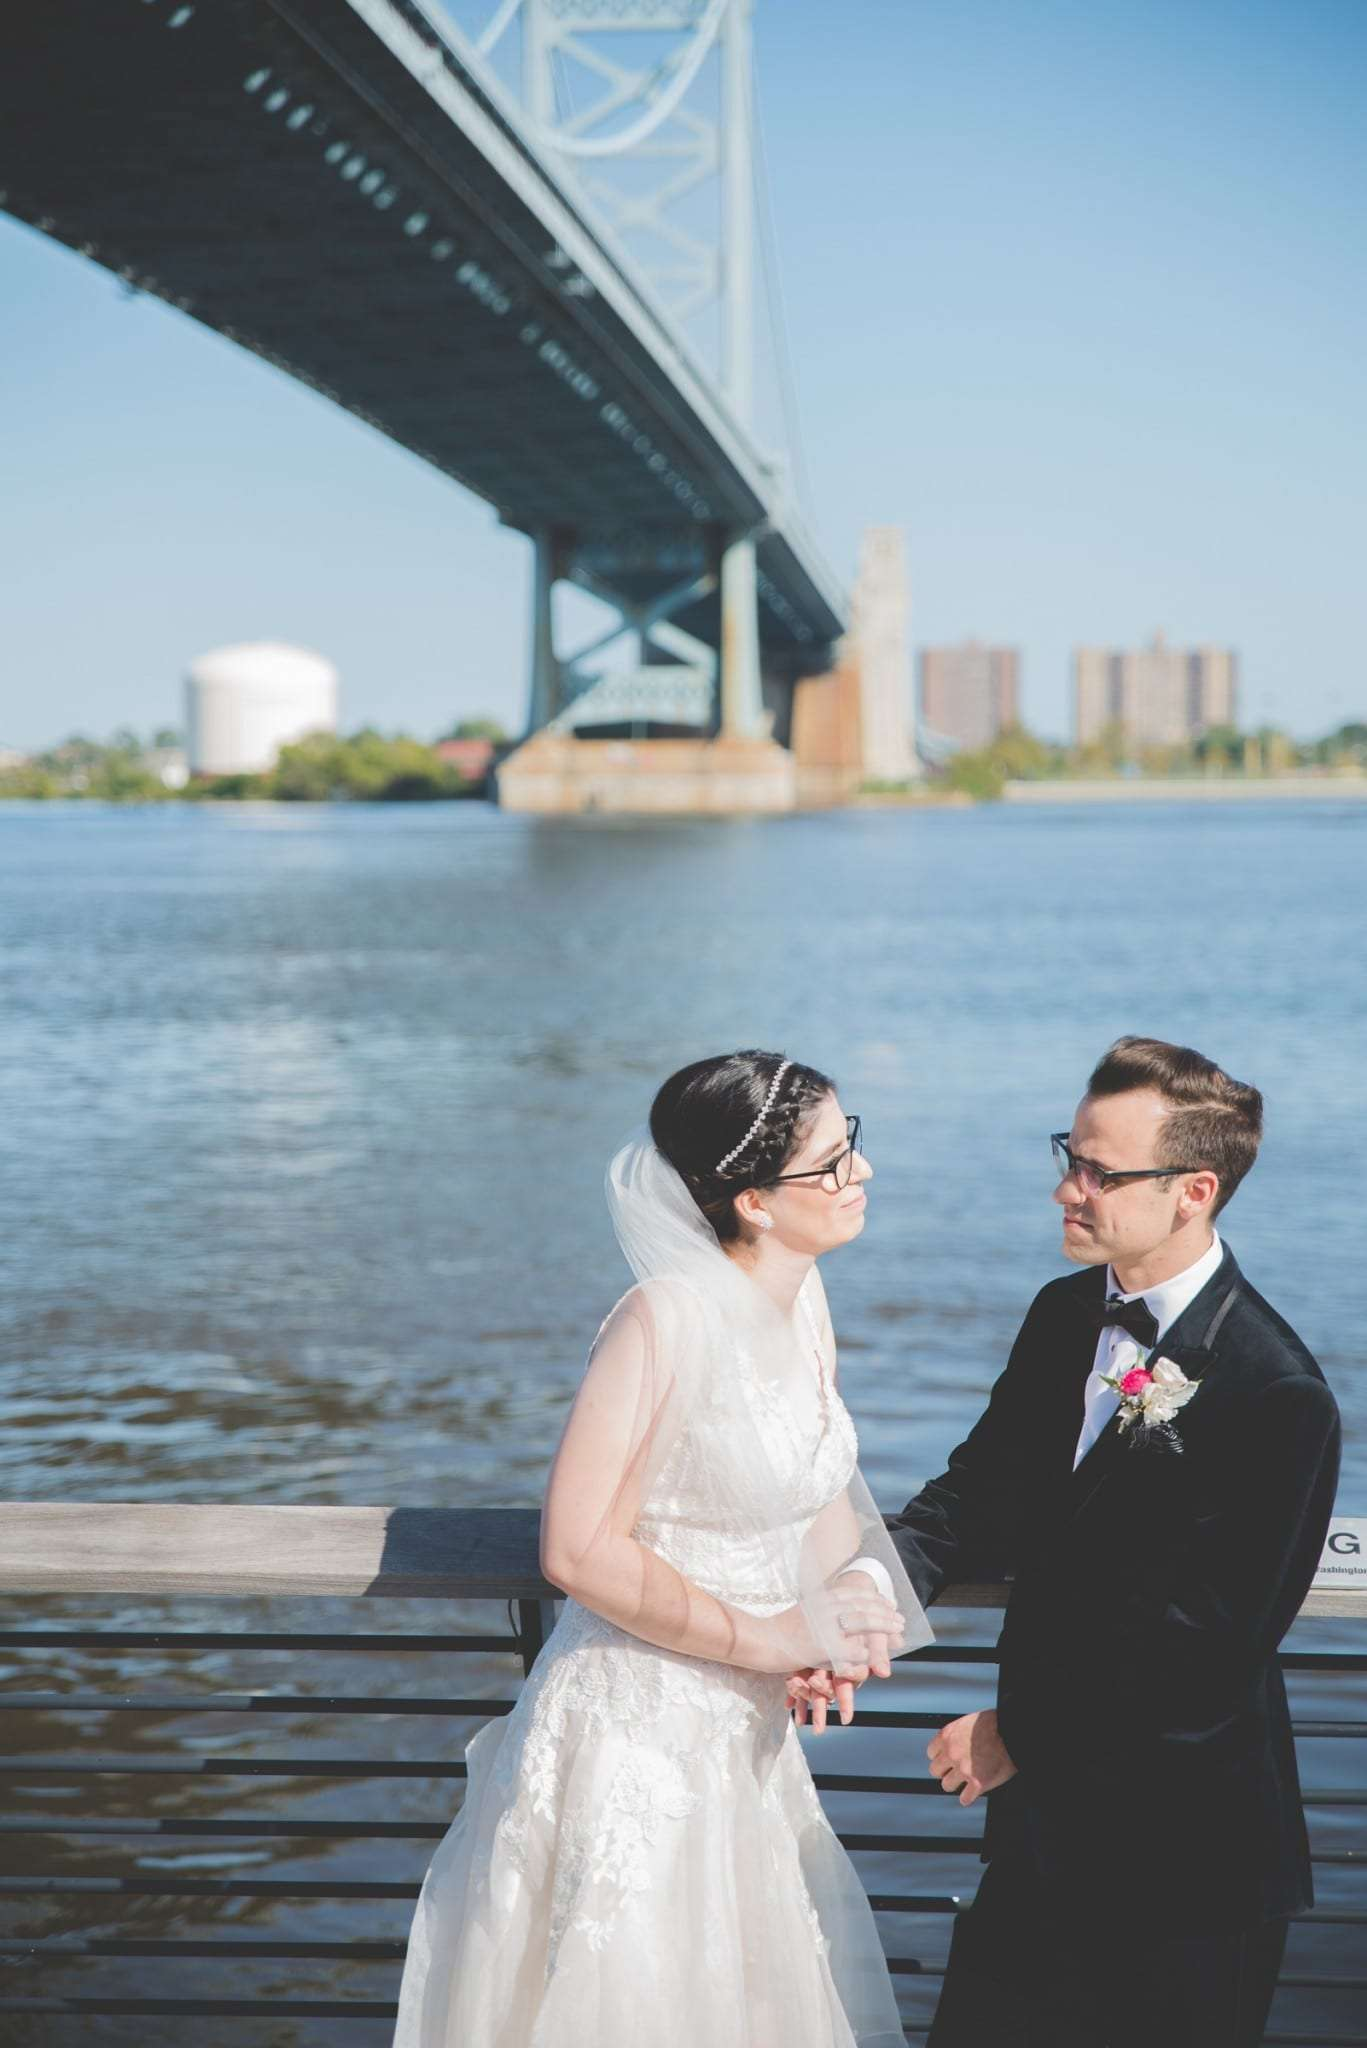 Race st pier wedding photos philadelphia wedding photographer